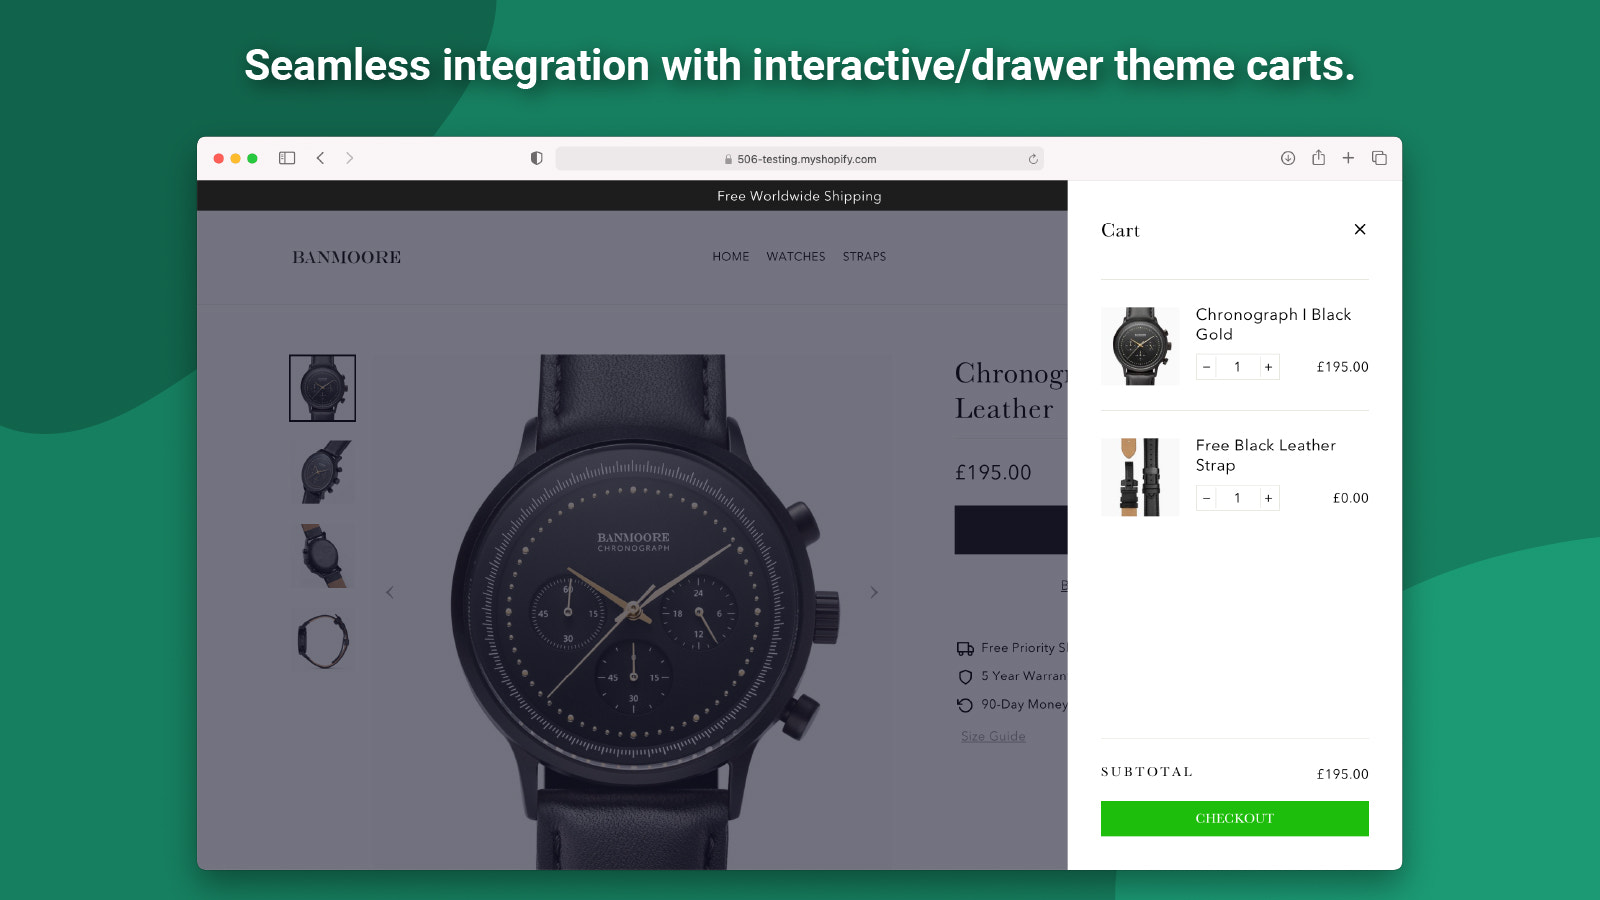 Seamless integration with interactive/drawer carts.